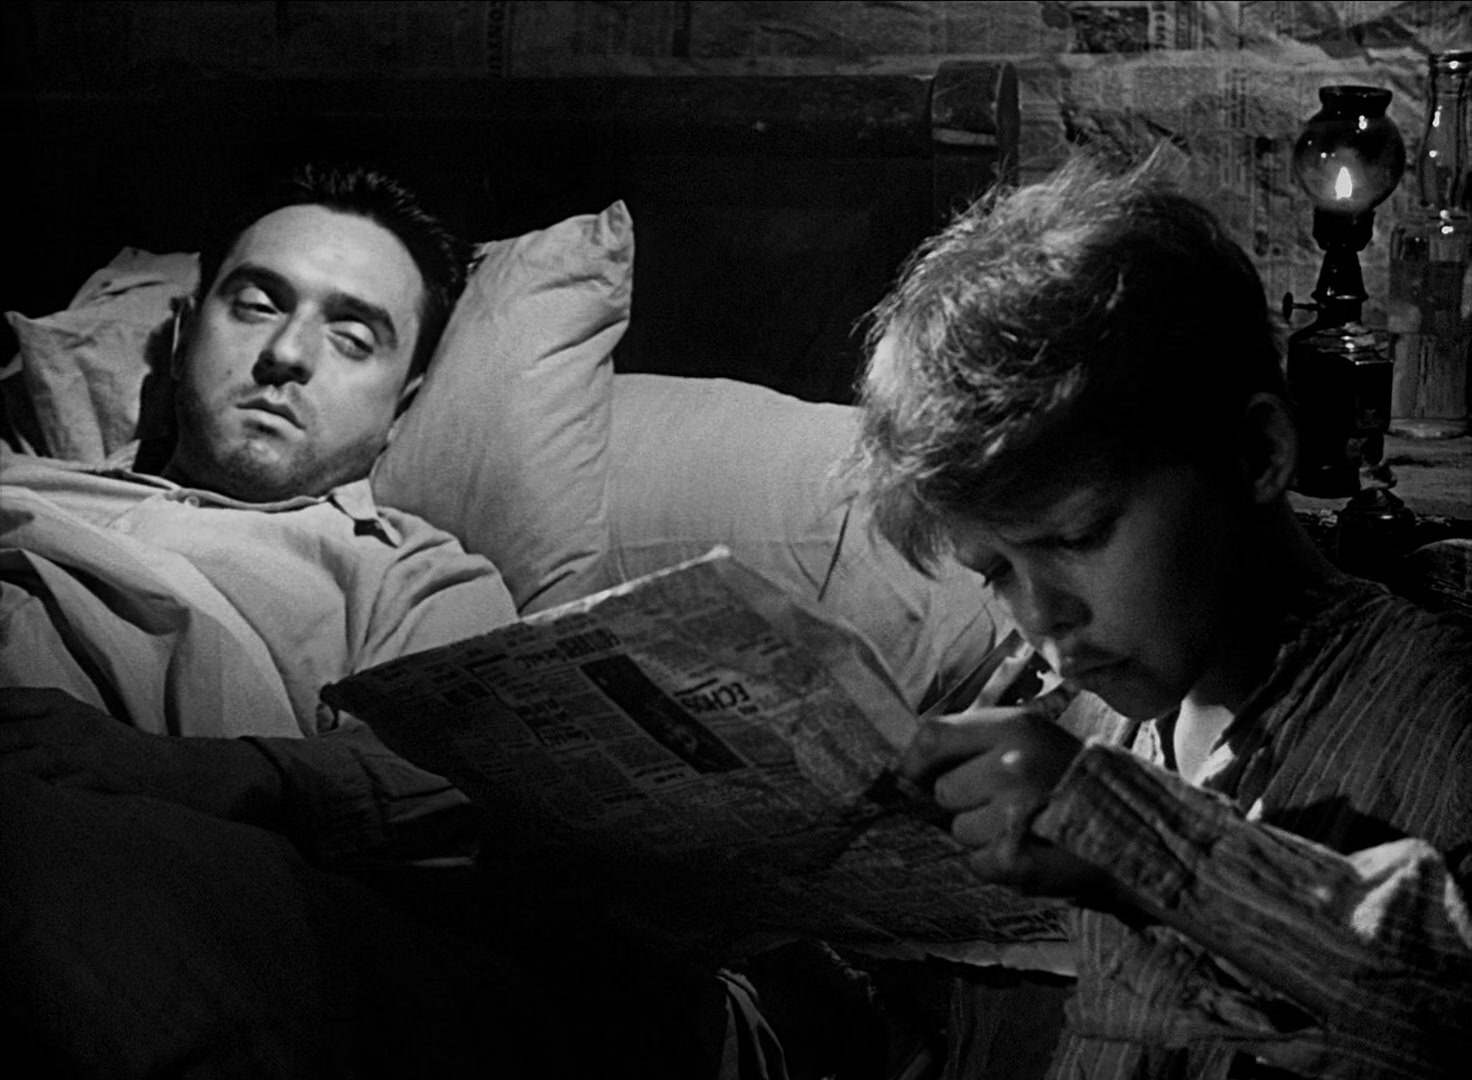 Michel reads to his dying brother in a scene from the 1952 film Forbidden Games